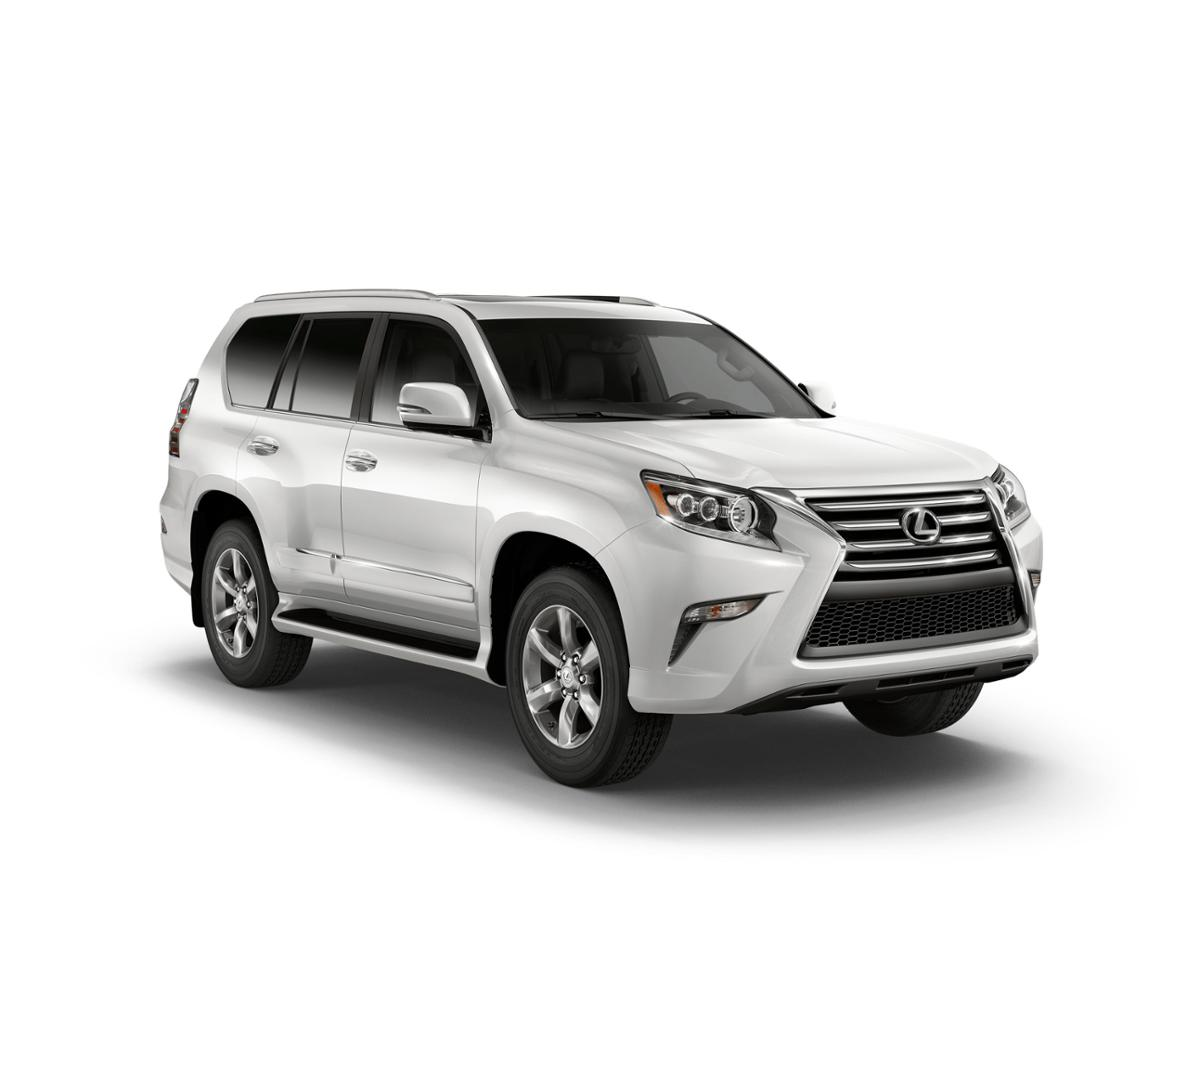 2017 Lexus GX 460 Vehicle Photo in Danvers, MA 01923